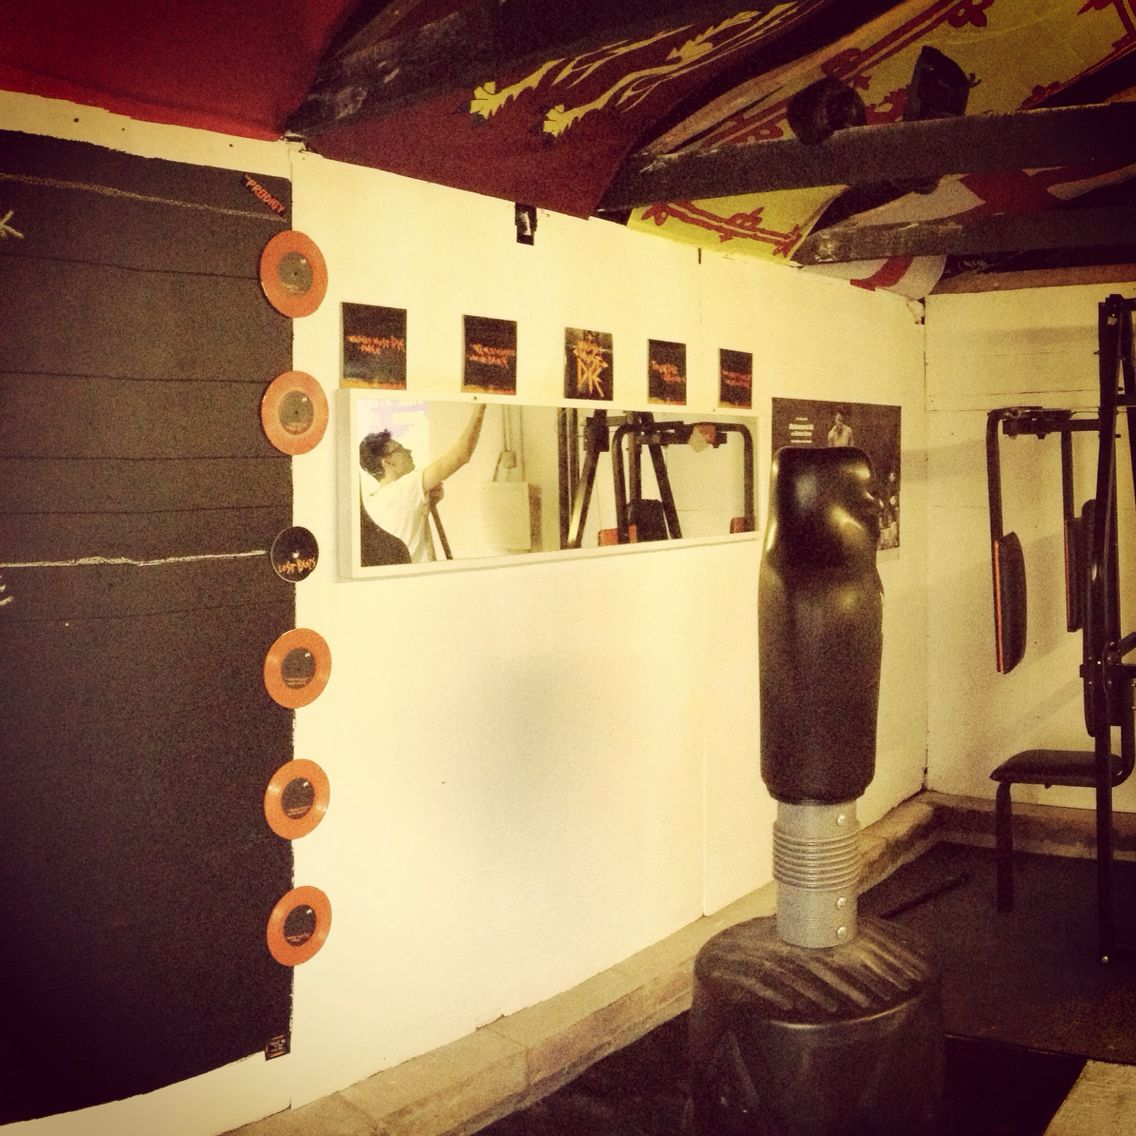 The prodigy tribute on the garage gym wall along with some